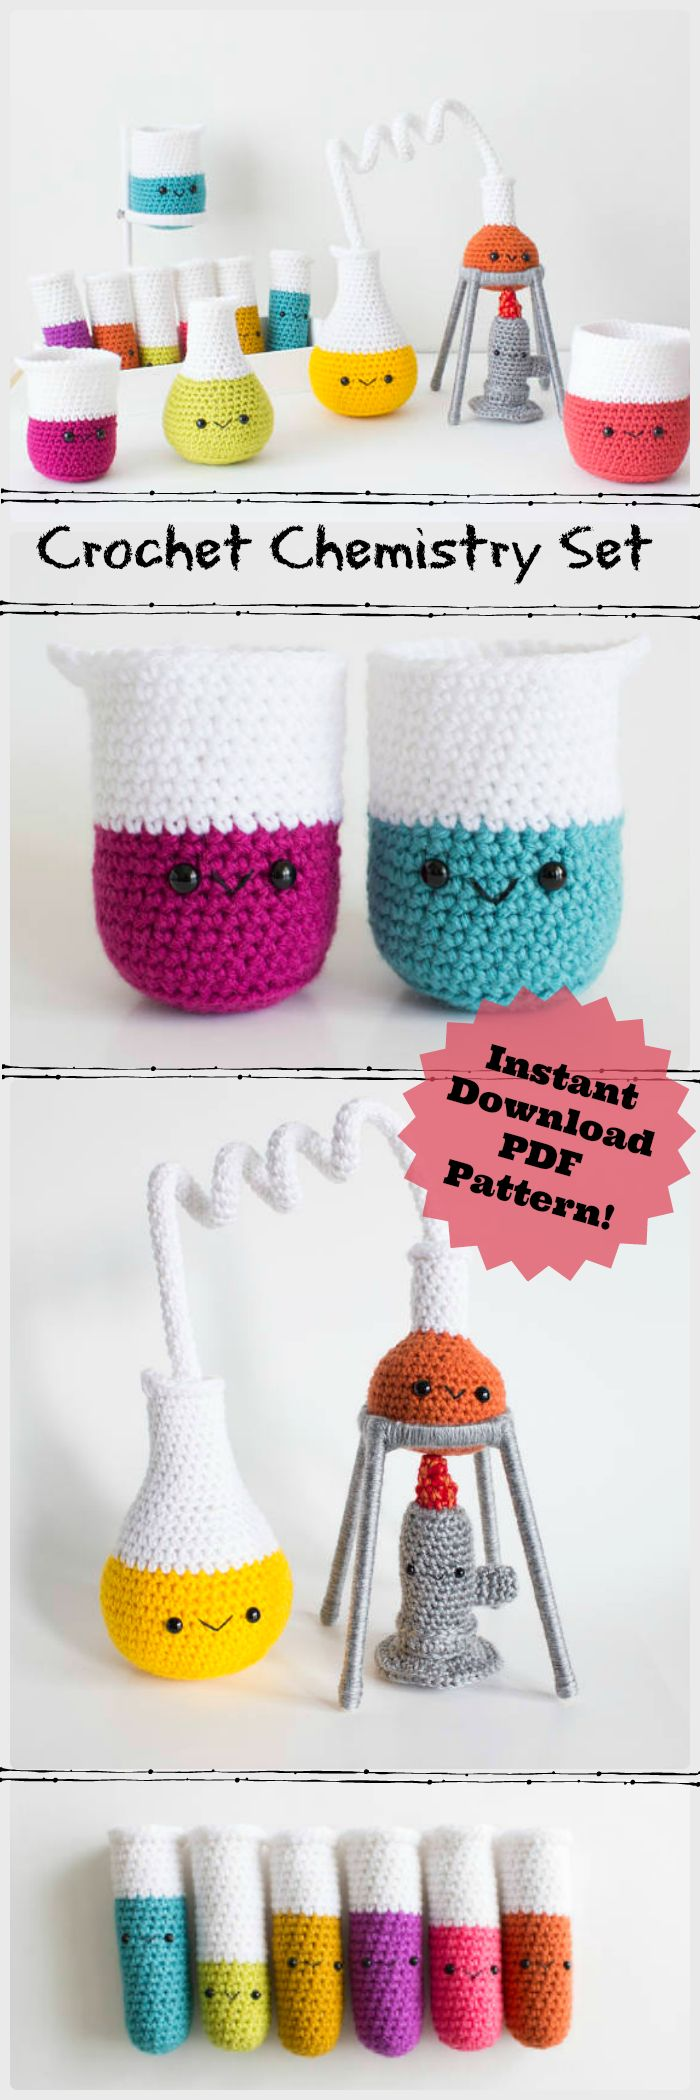 Chemistry set crochet amigurumi pattern! Whaaaaa???! This is awesome! What a fun idea to crochet for my chemistry nerd friends! #awesome #etsy #crochet #pattern #amigurumi #chemistry #beakers #ad